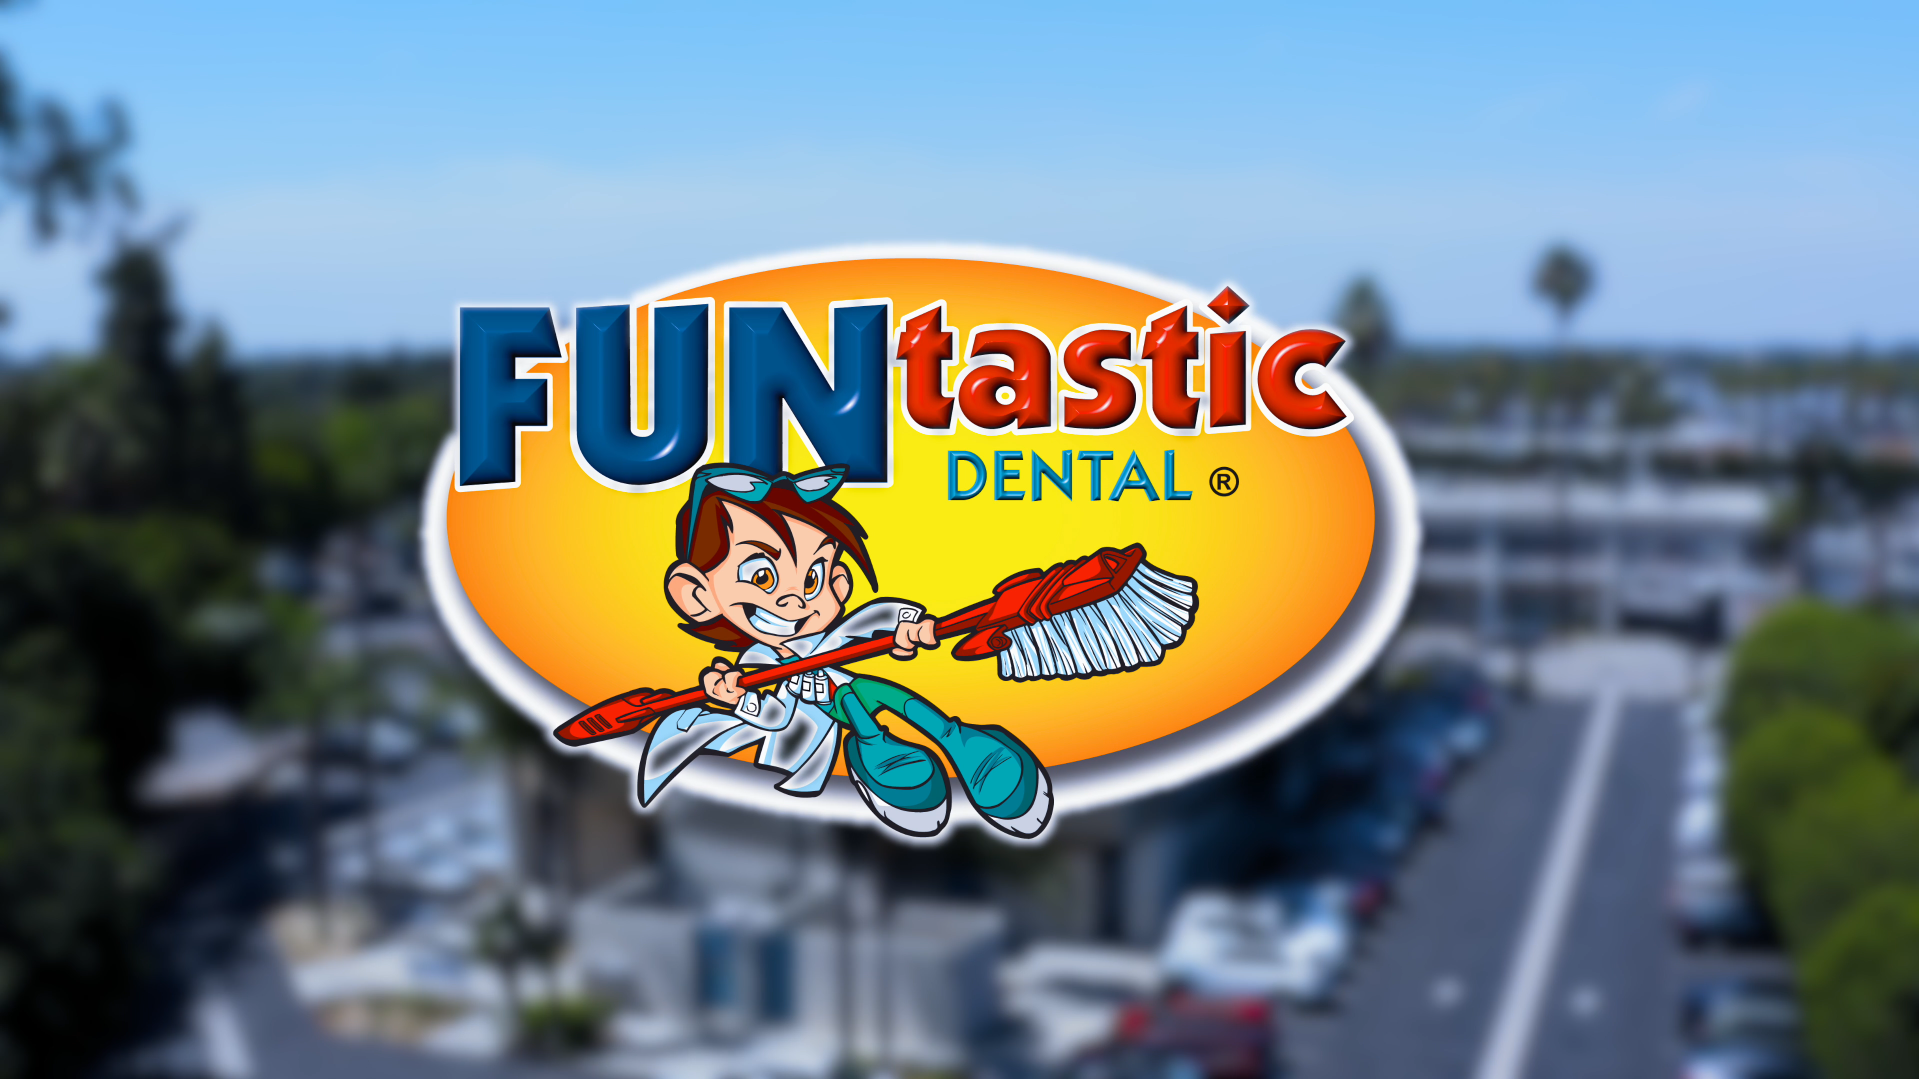 FUNtastic Pediatric Offers Painless Dental Services in Long Beach, CA 9